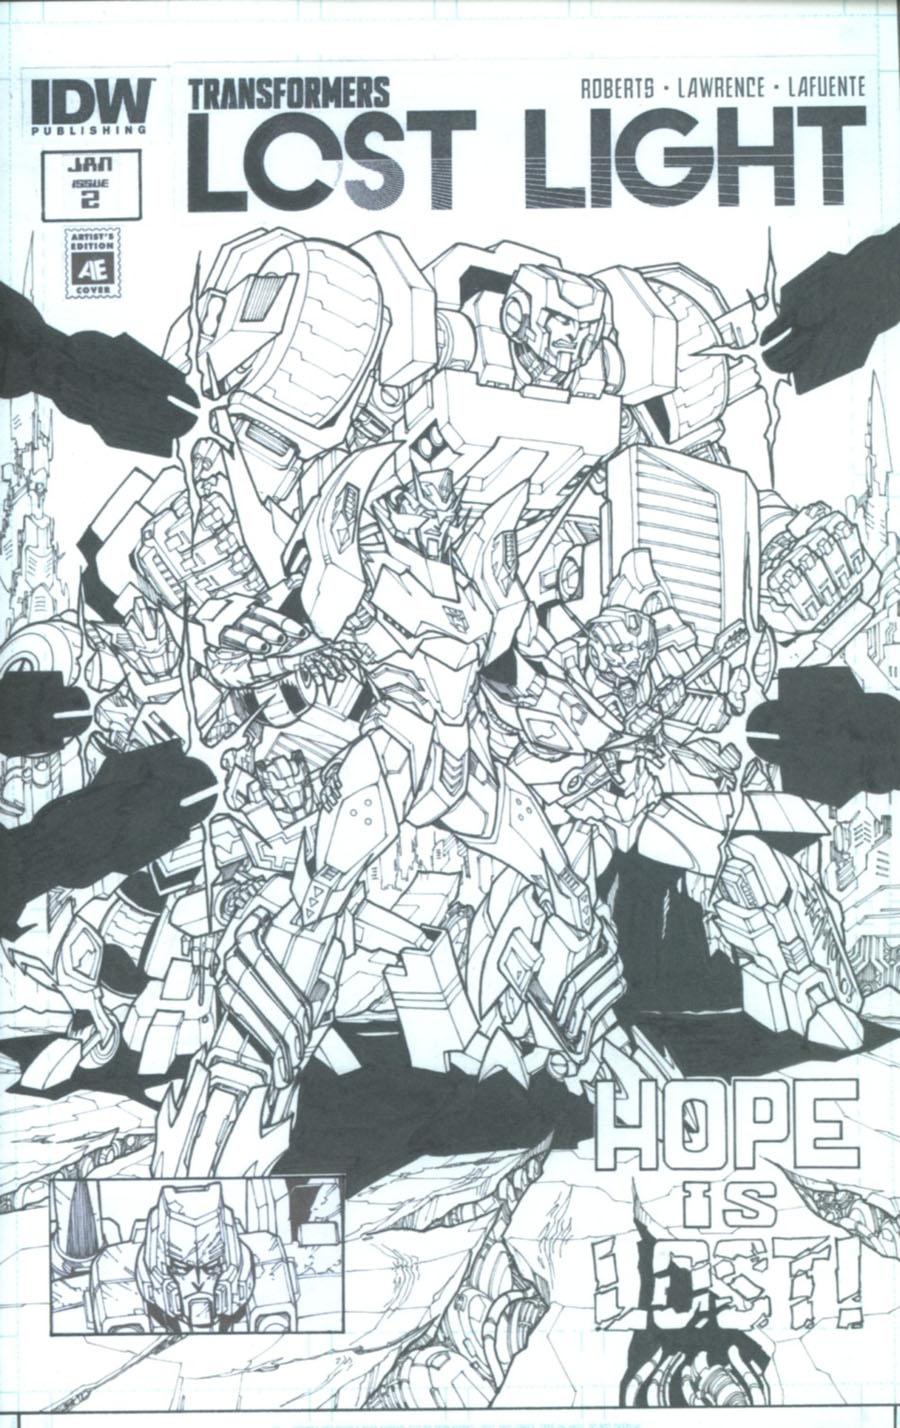 Transformers Lost Light #2 Cover B Variant Alex Milne Artists Edition Cover